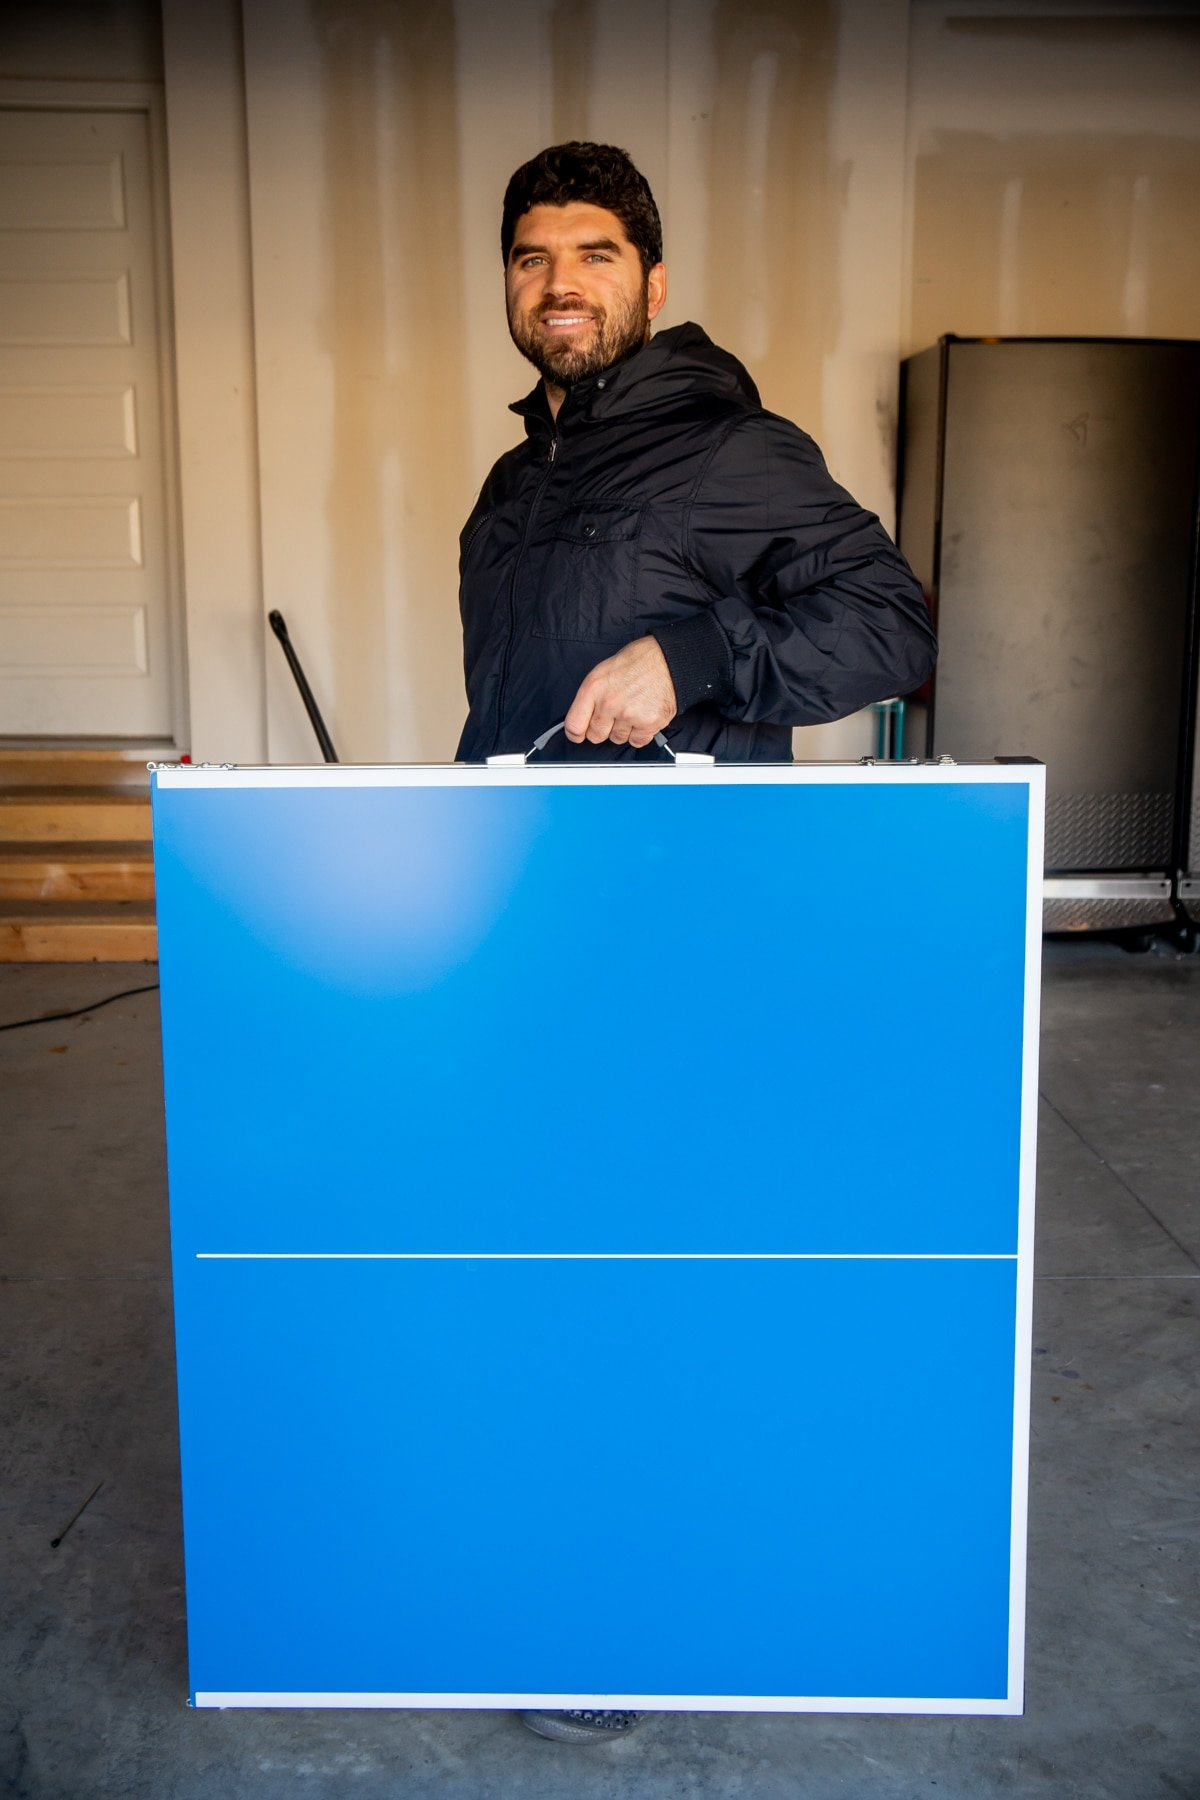 Man holding a foldable ping pong table